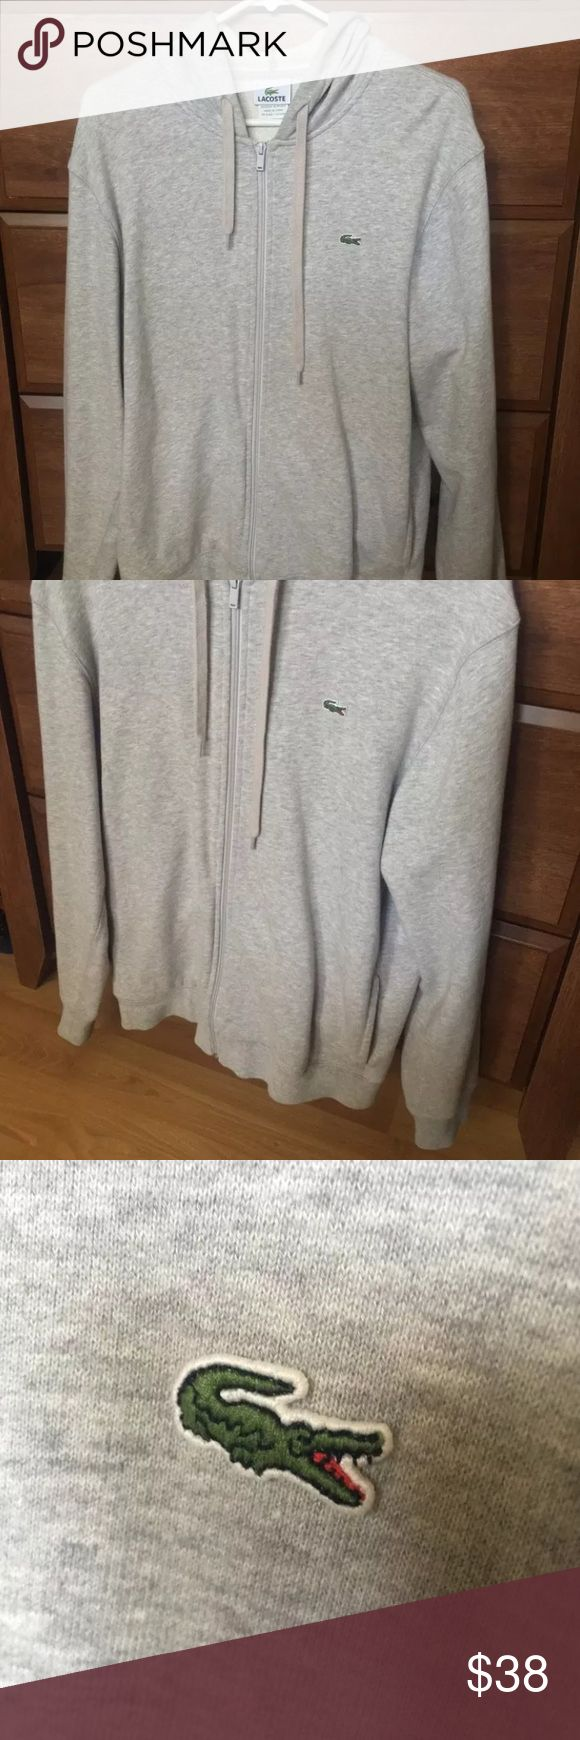 *CHEAP* Lacoste Grey Hoodie Size 5 (Medium) Lacoste gray hoodie size 5 medium. This is a Regular fit hoodie that normally retails for $75+. It has only been worn 3 times and comes from a smoke free home. Great hoodie for lounging around or a nice night out on the town. No holes, stains, any imperfections whatsoever. Cheap alternative to polo Ralph Lauren and other hoodies. Lacoste Shirts Sweatshirts & Hoodies